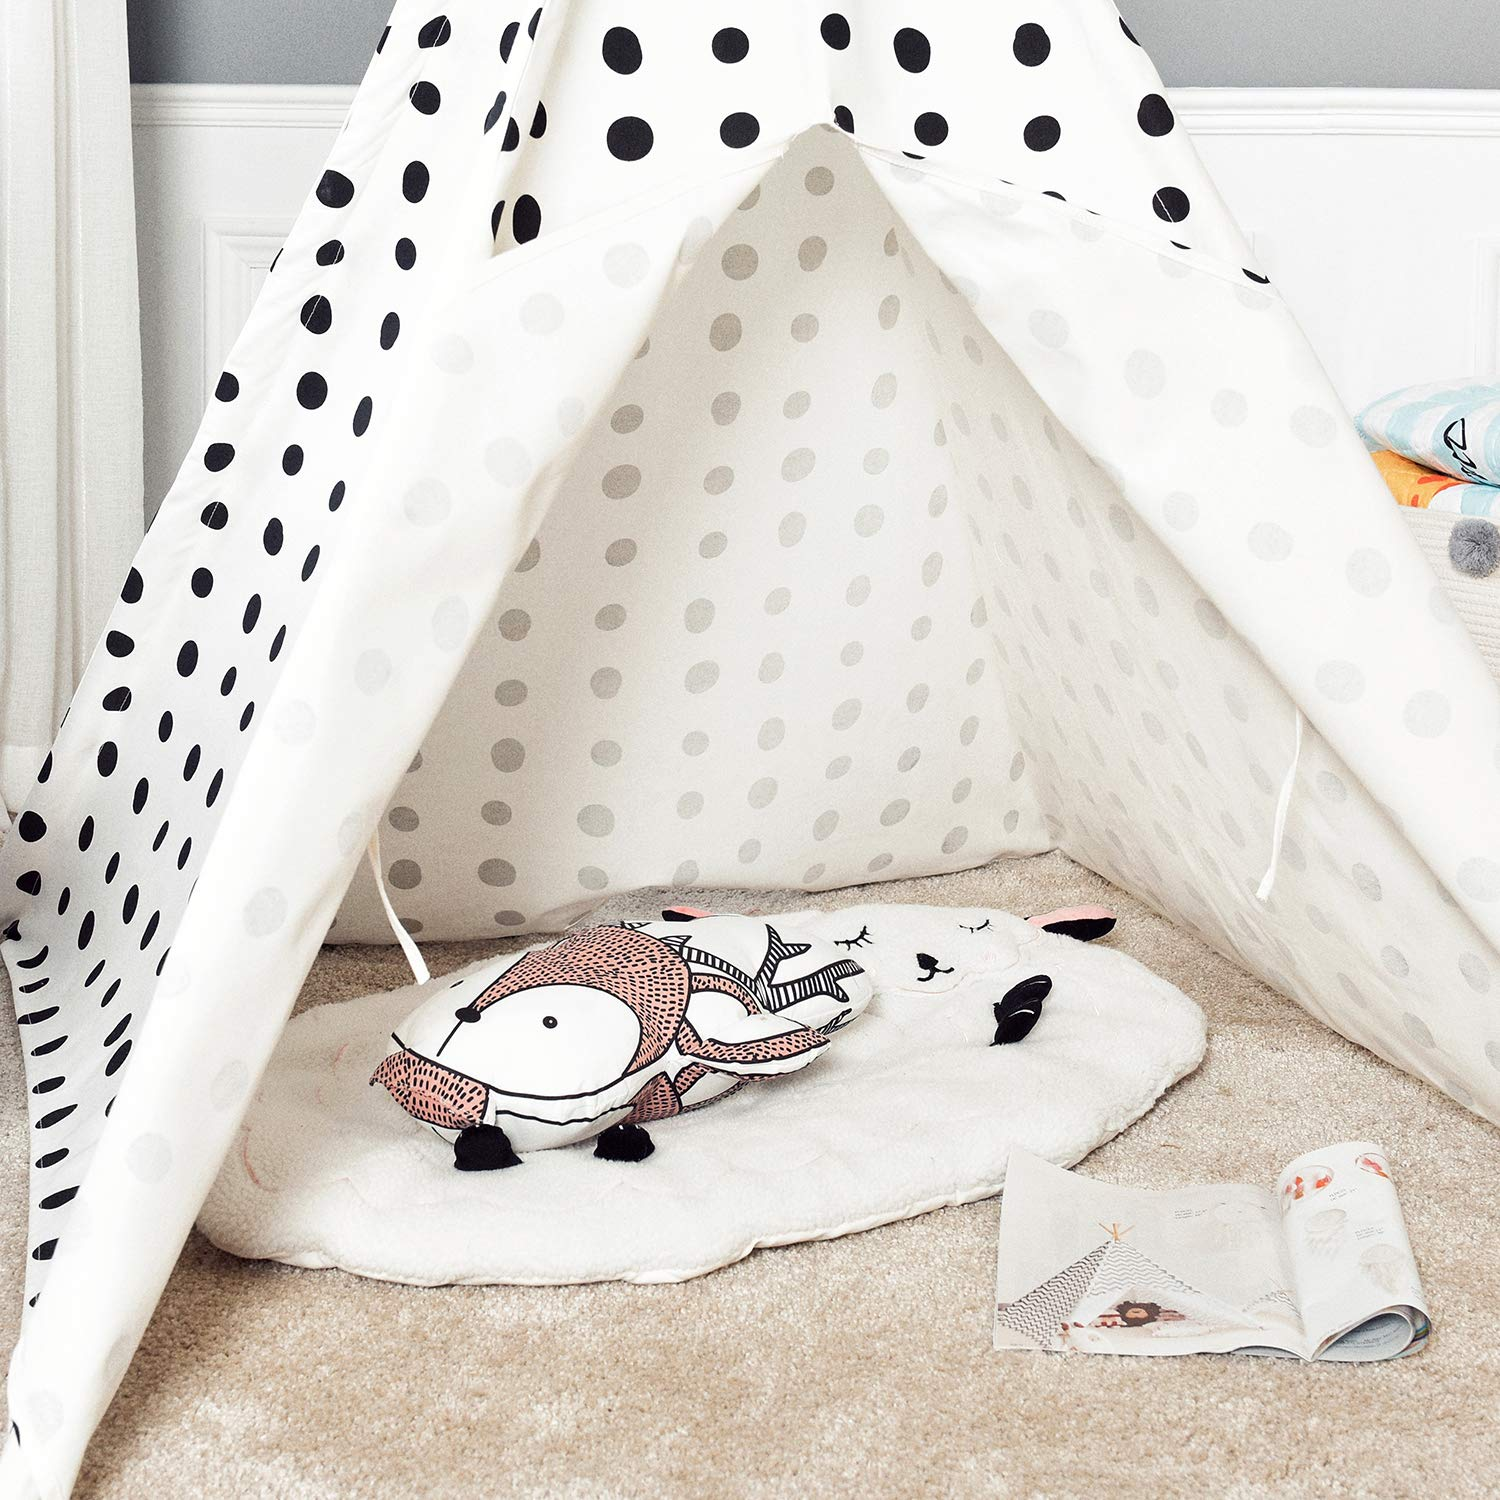 Asweets Teepee Tent for Kids Teepee Play Tent Mat for Boys Indoor Outdoor Play House Tent Indian Canvas Tipi Tent Blue Top Black Point by Asweets (Image #3)